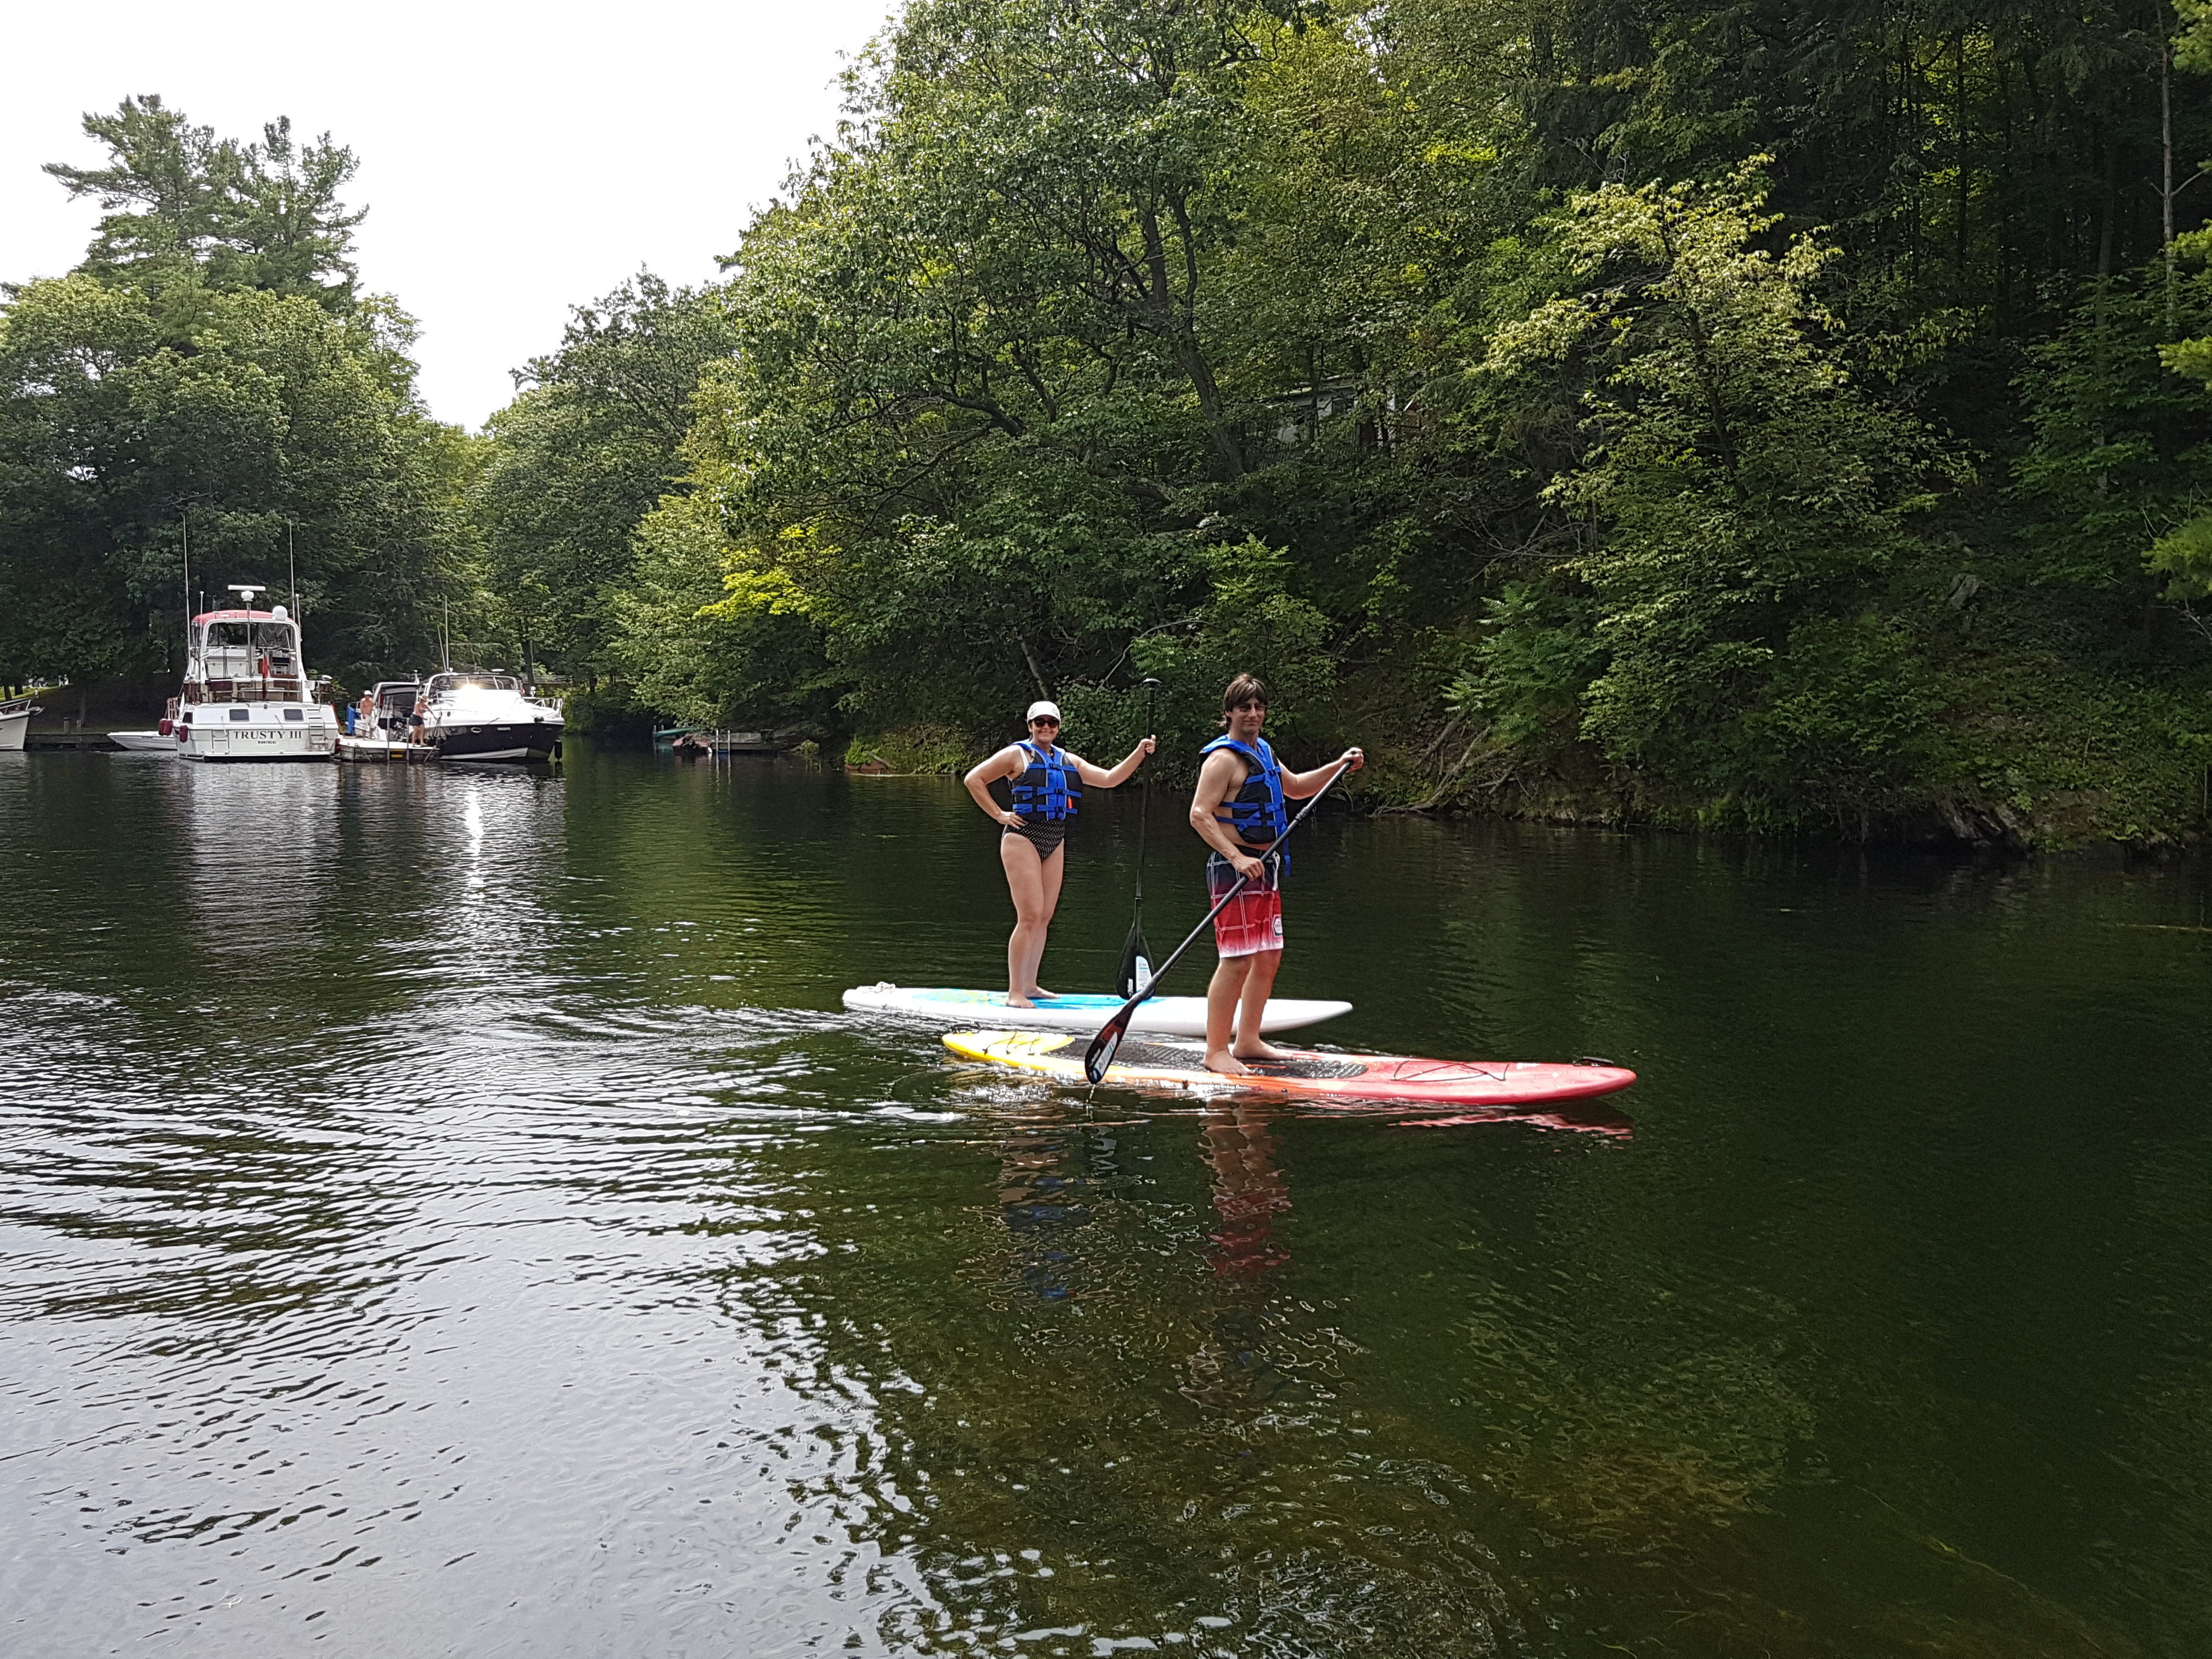 Image of two people on paddle boards.